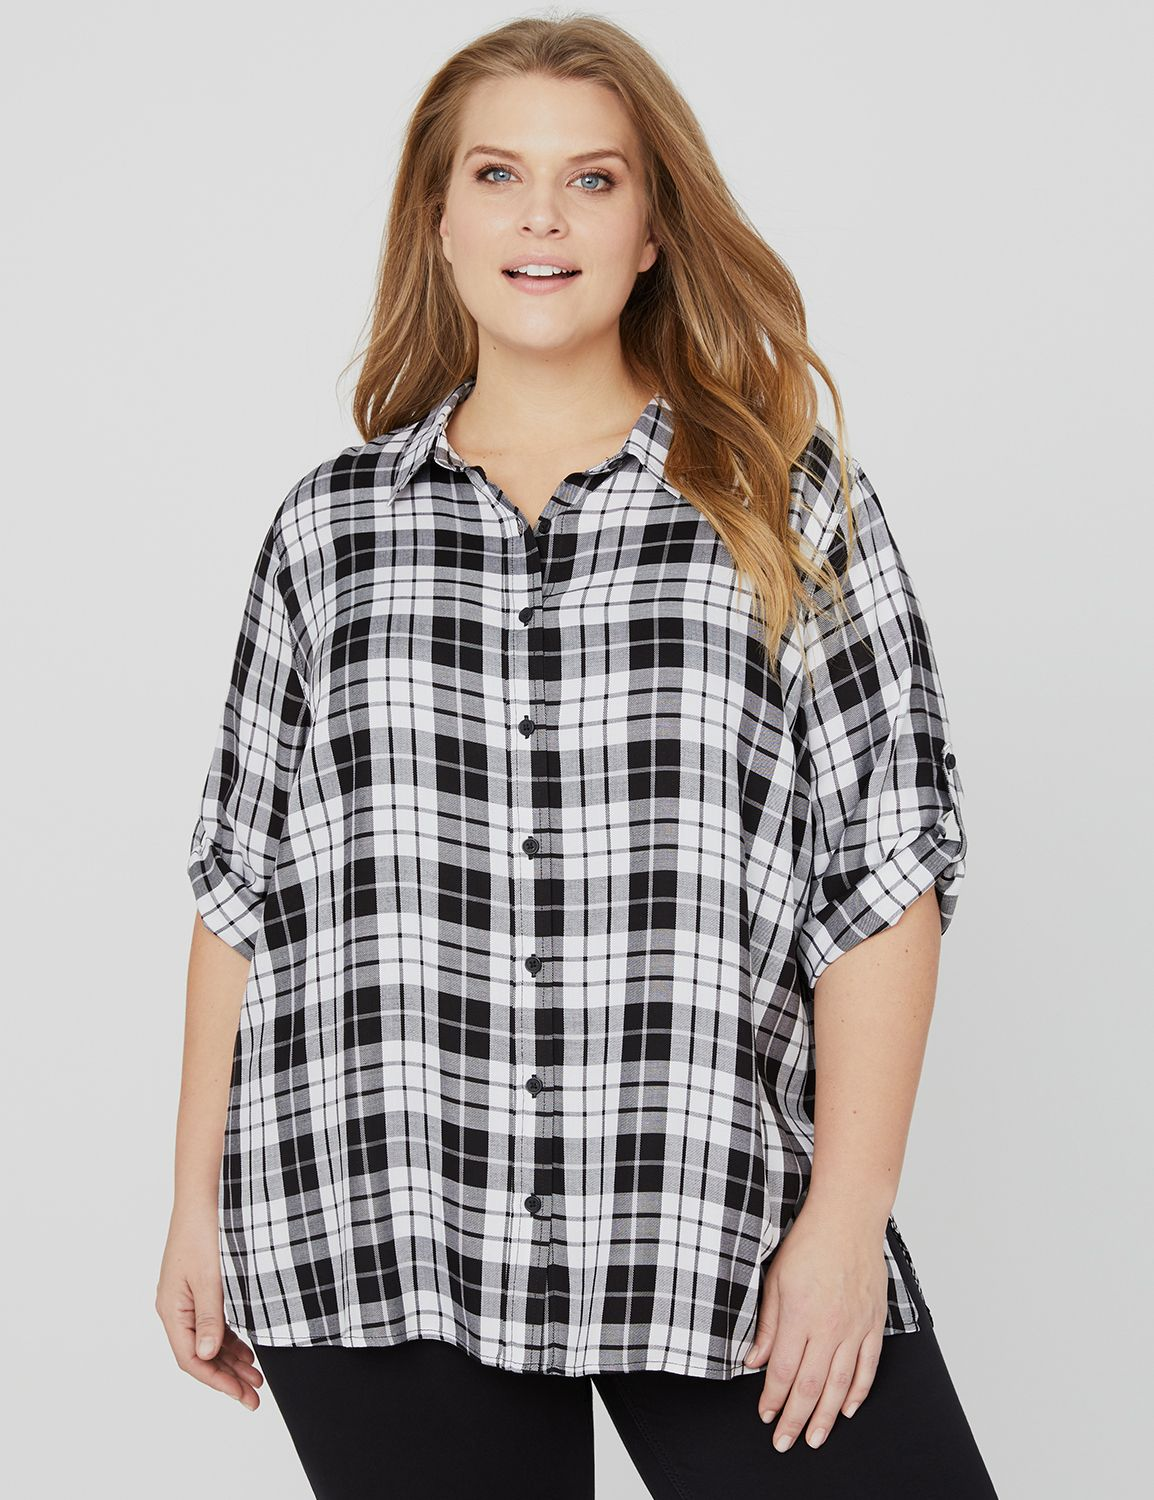 Hybrid Buttonfront Shirt 1093256 3/4 SLV PLAID BACK SHIRT MP-300101744